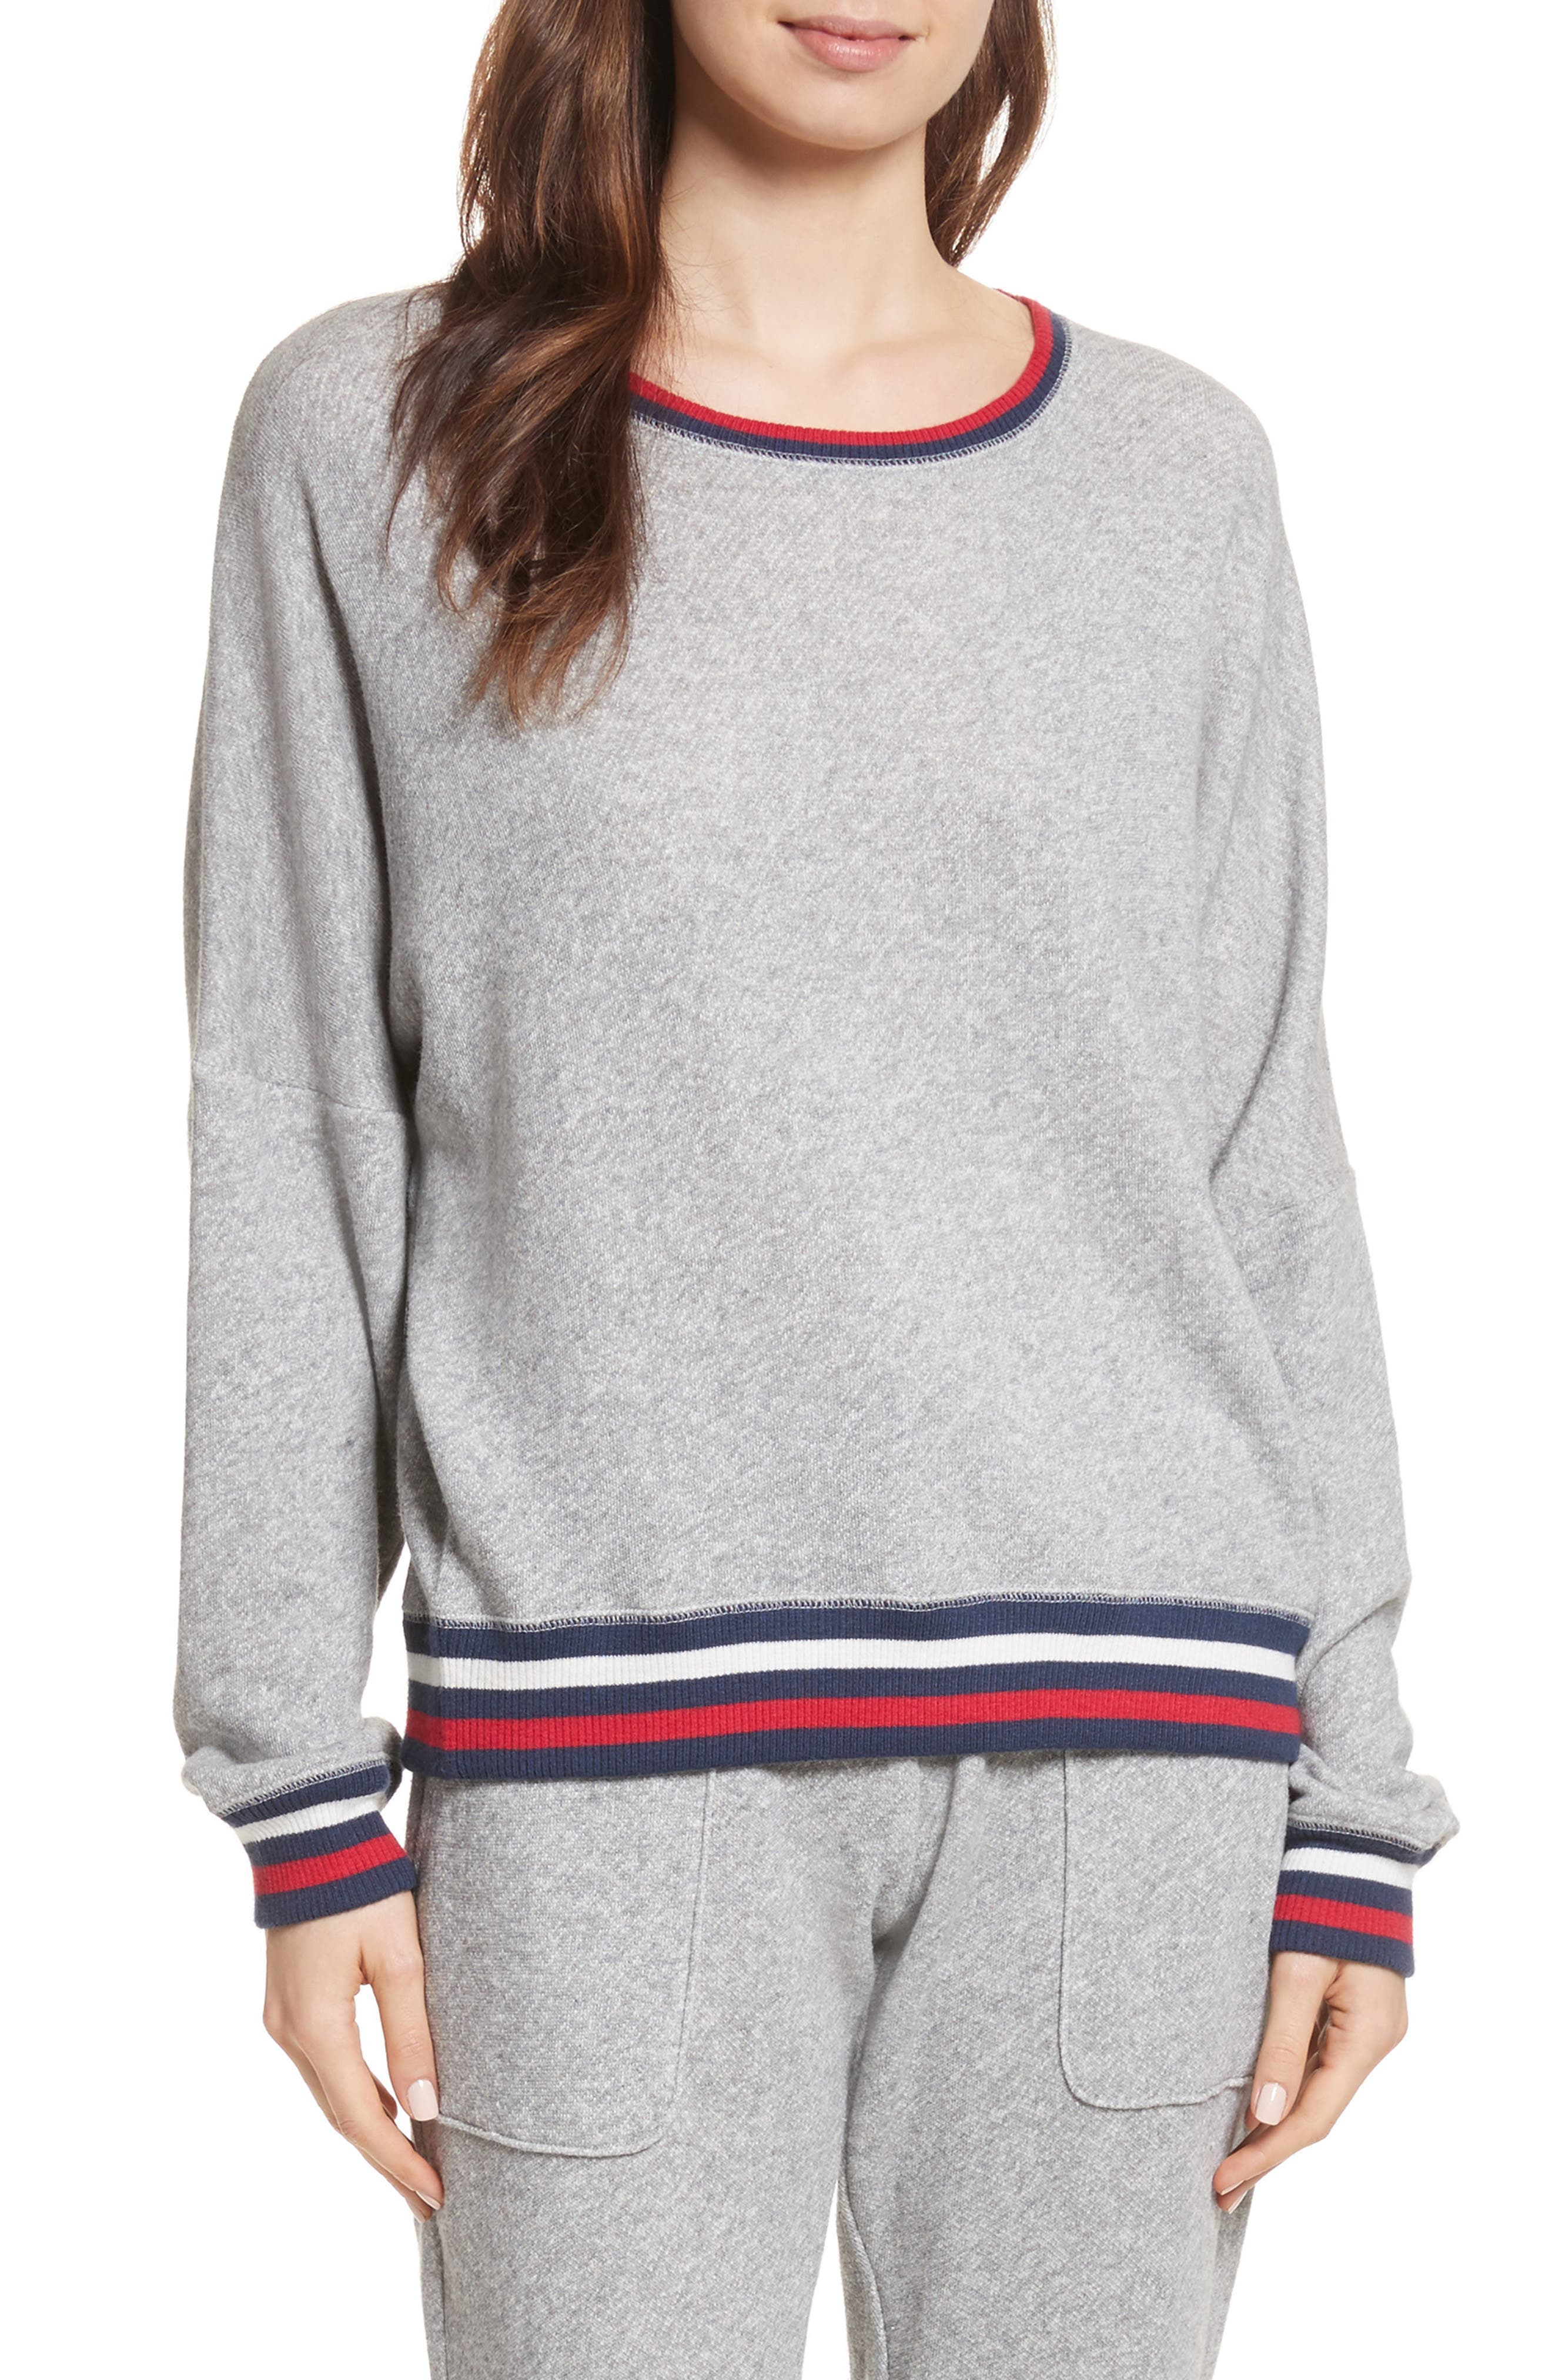 JOIE Richardine B Sweatshirt, Main, color, 033